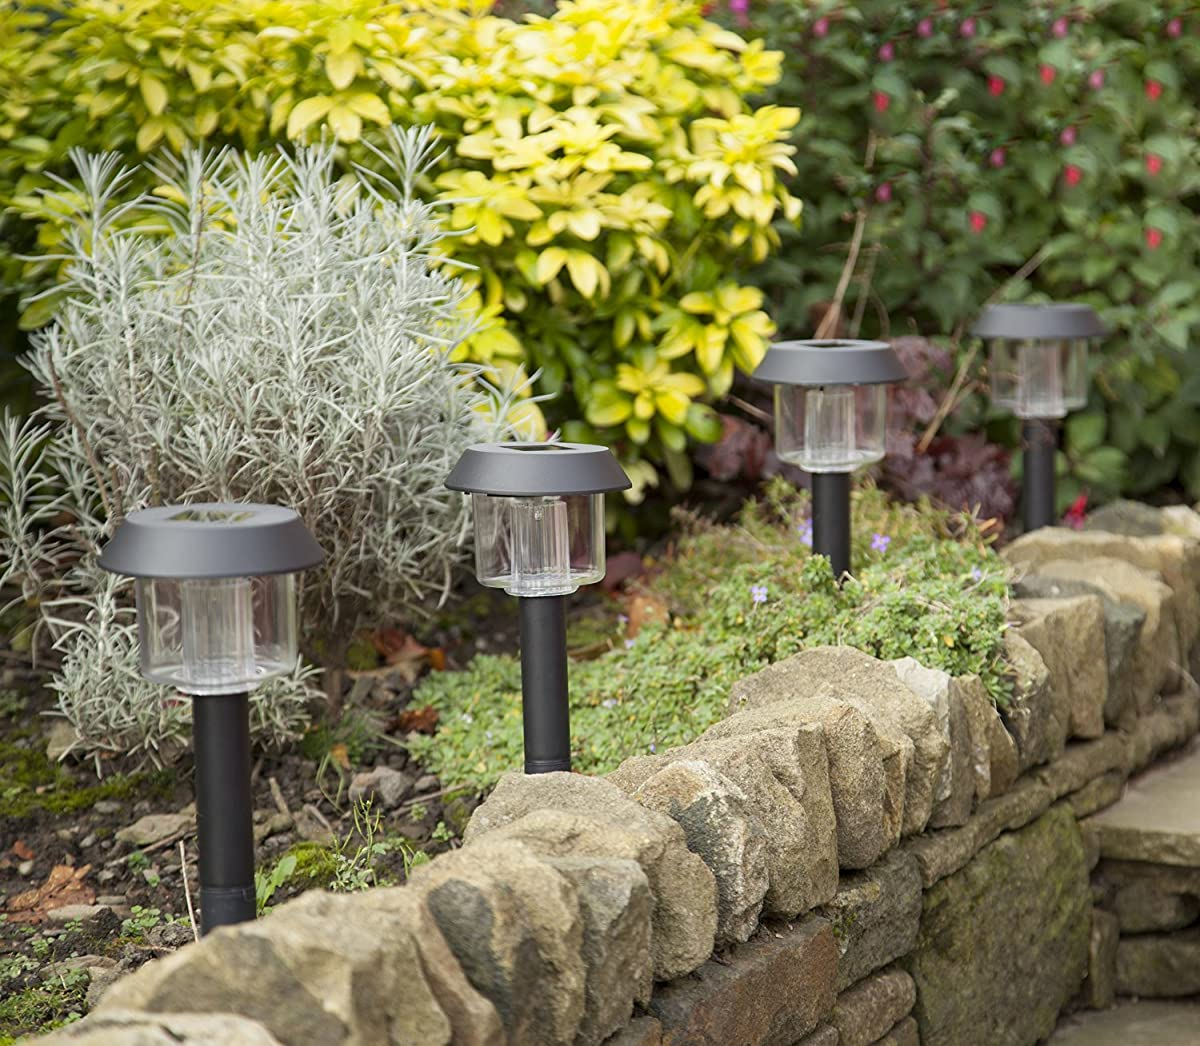 Solar-Powered LED Garden Lights, Lifetime replacement Guarantee, Perfect Neutral Design; Makes Garden Pathways & Flower Beds Look Great; Easy NO-WIRE Installation; All-Weather/Water-Resistant.